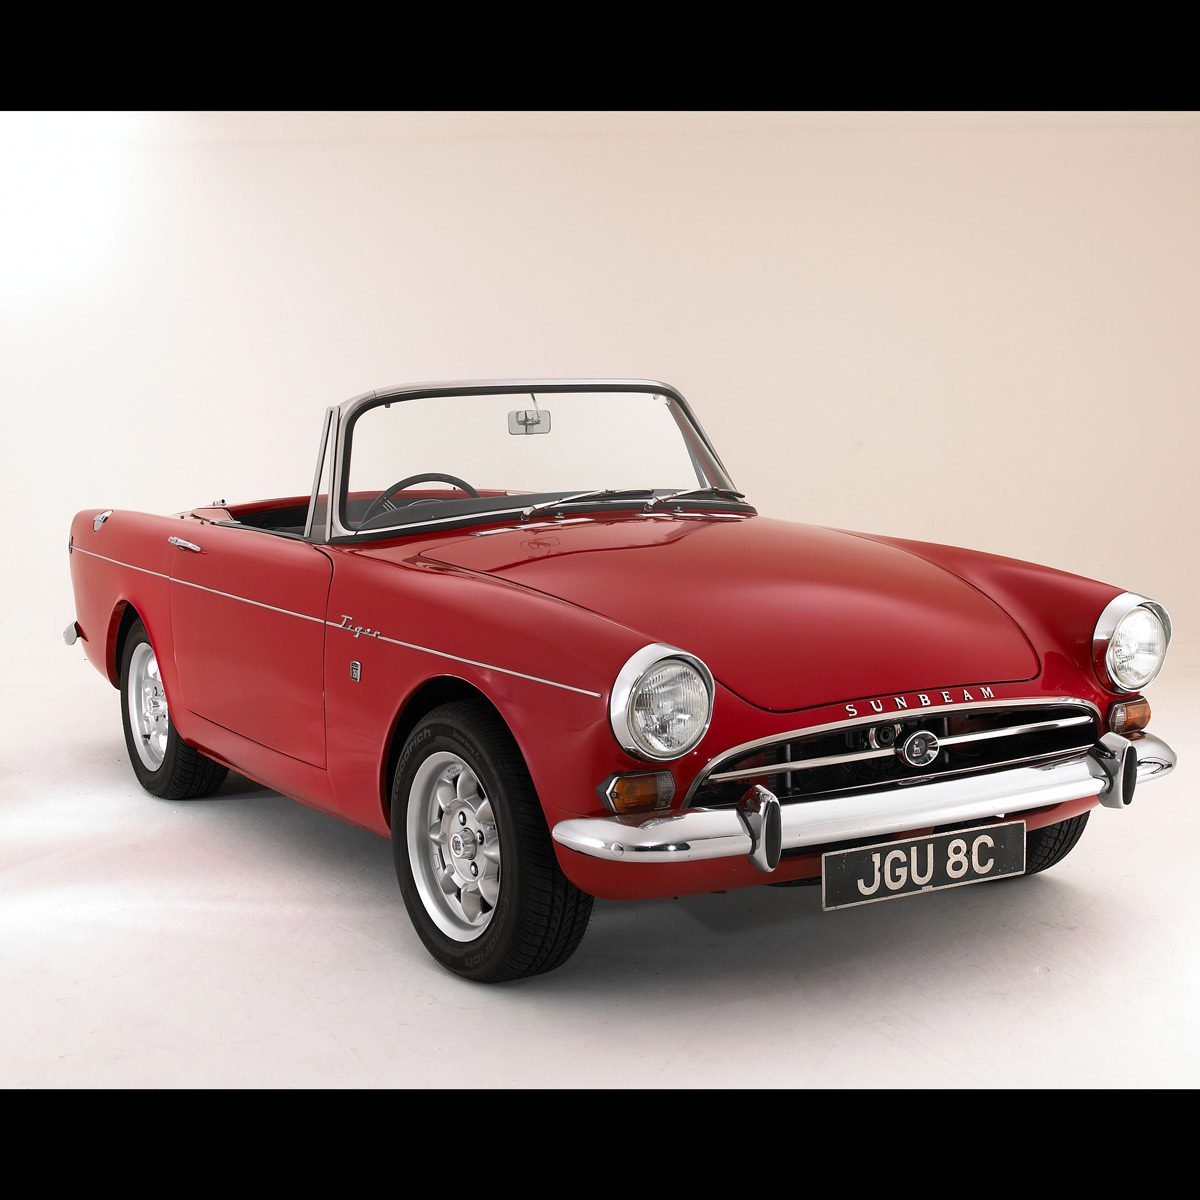 "1965 Sunbeam Tiger Alpine 260 used in the TV show ""Get Smart"" sits in a studio"